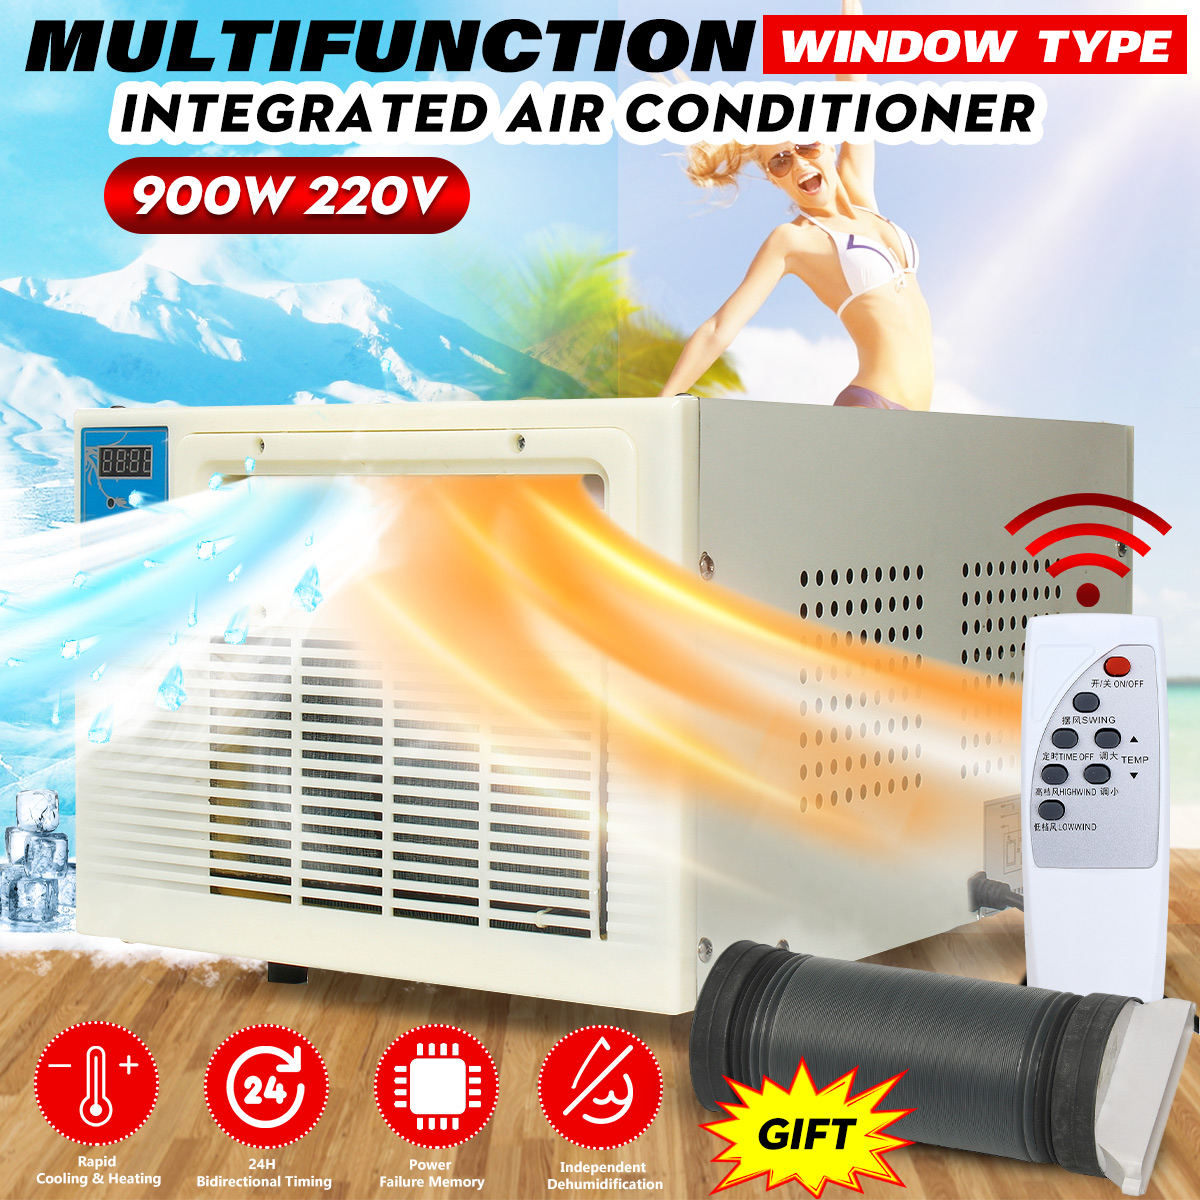 New Arrival 2019 900W Portable Air Conditioner Window Portable Air Conditioner Heater Cooling Cooler Cold/Heat 220V Dehumidifier